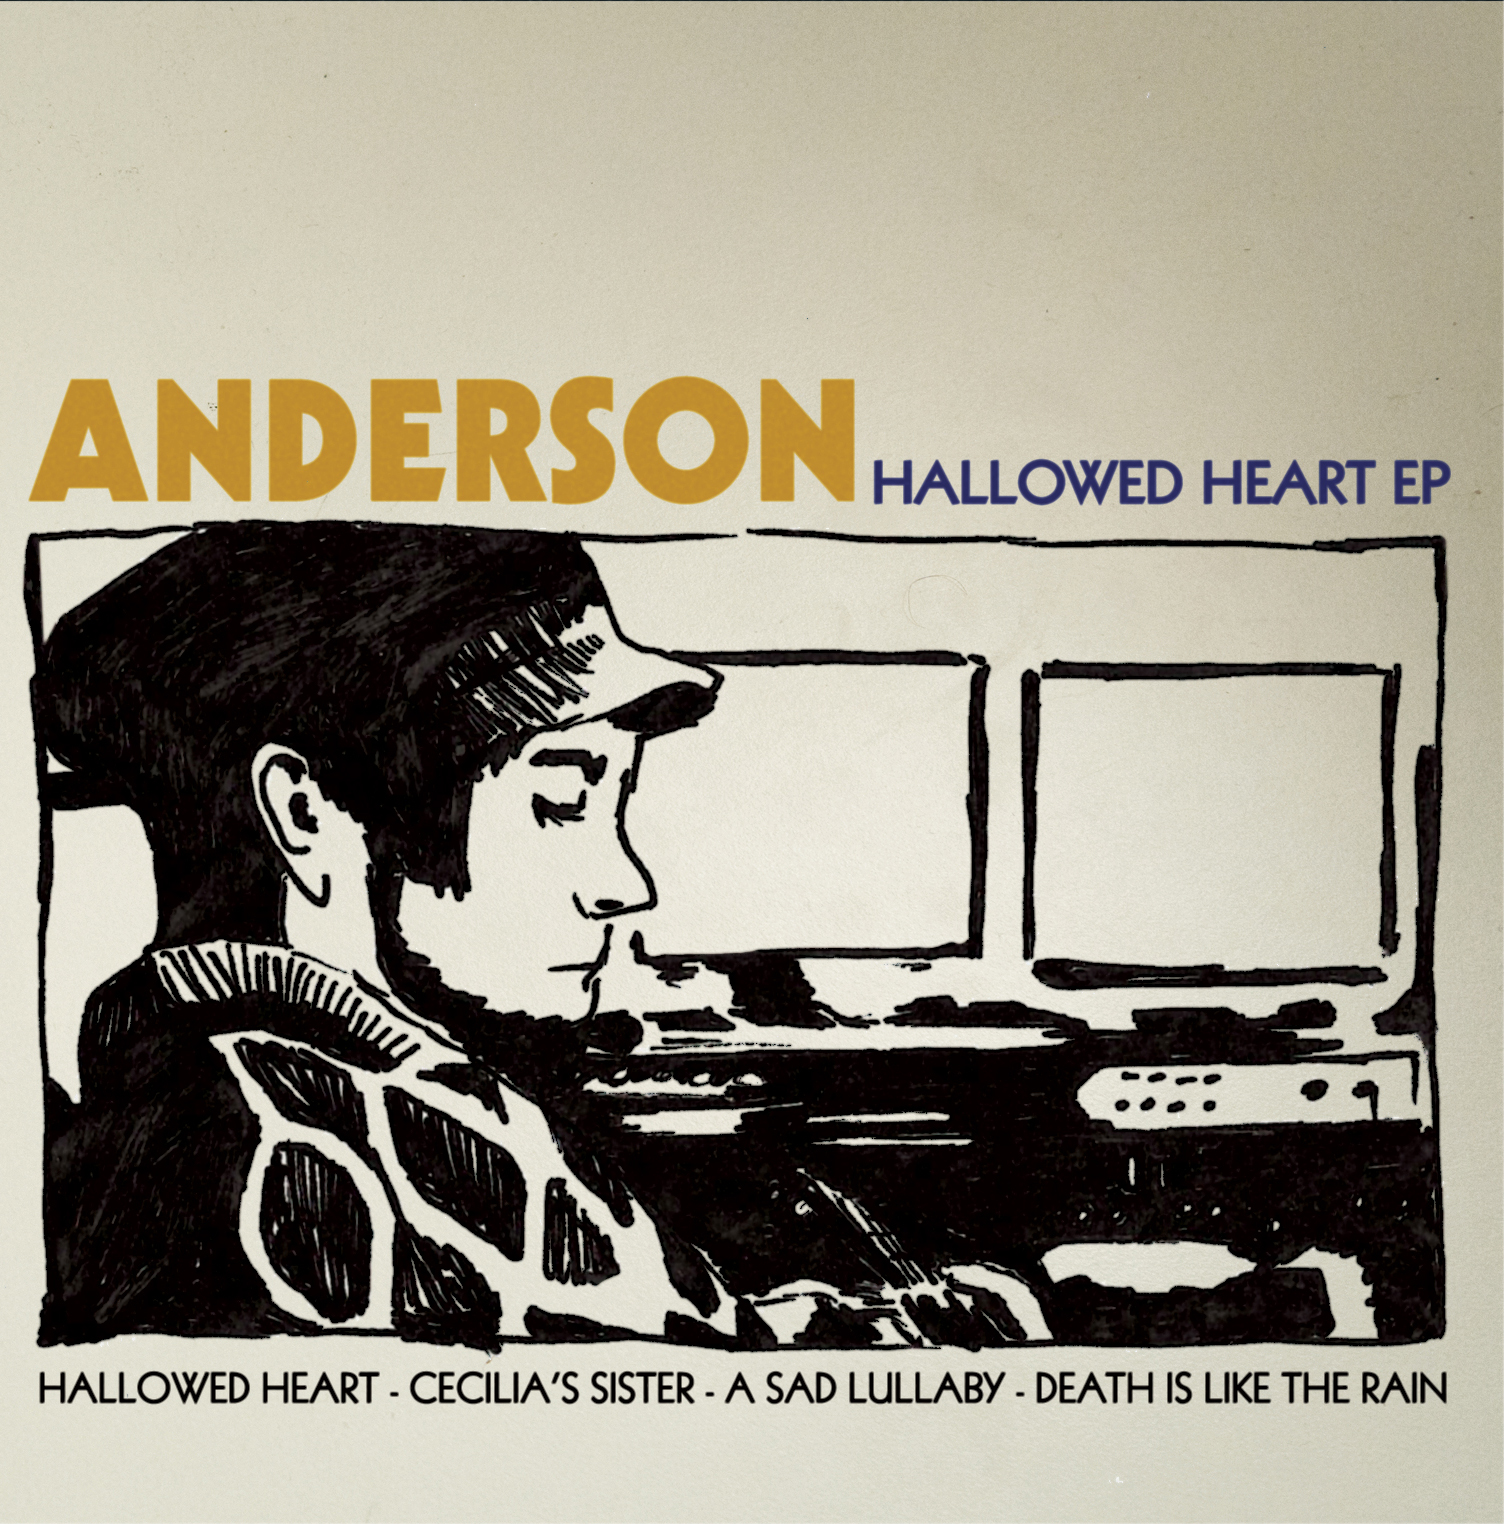 anderson hallowed heart